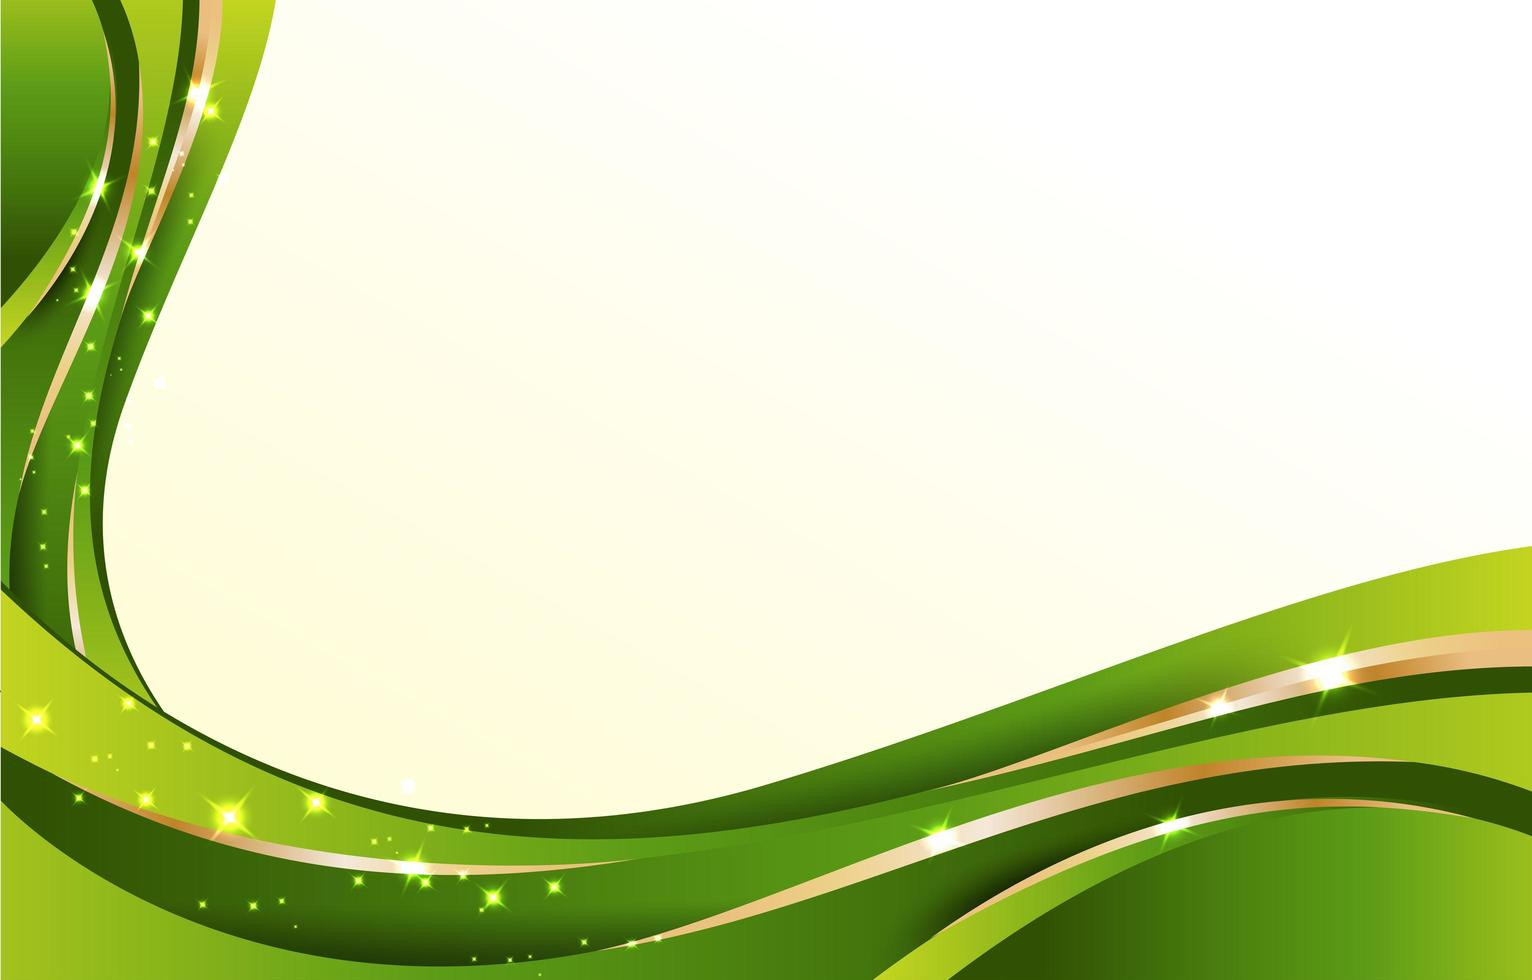 Abstract Green Background with Gold Wave Lines vector